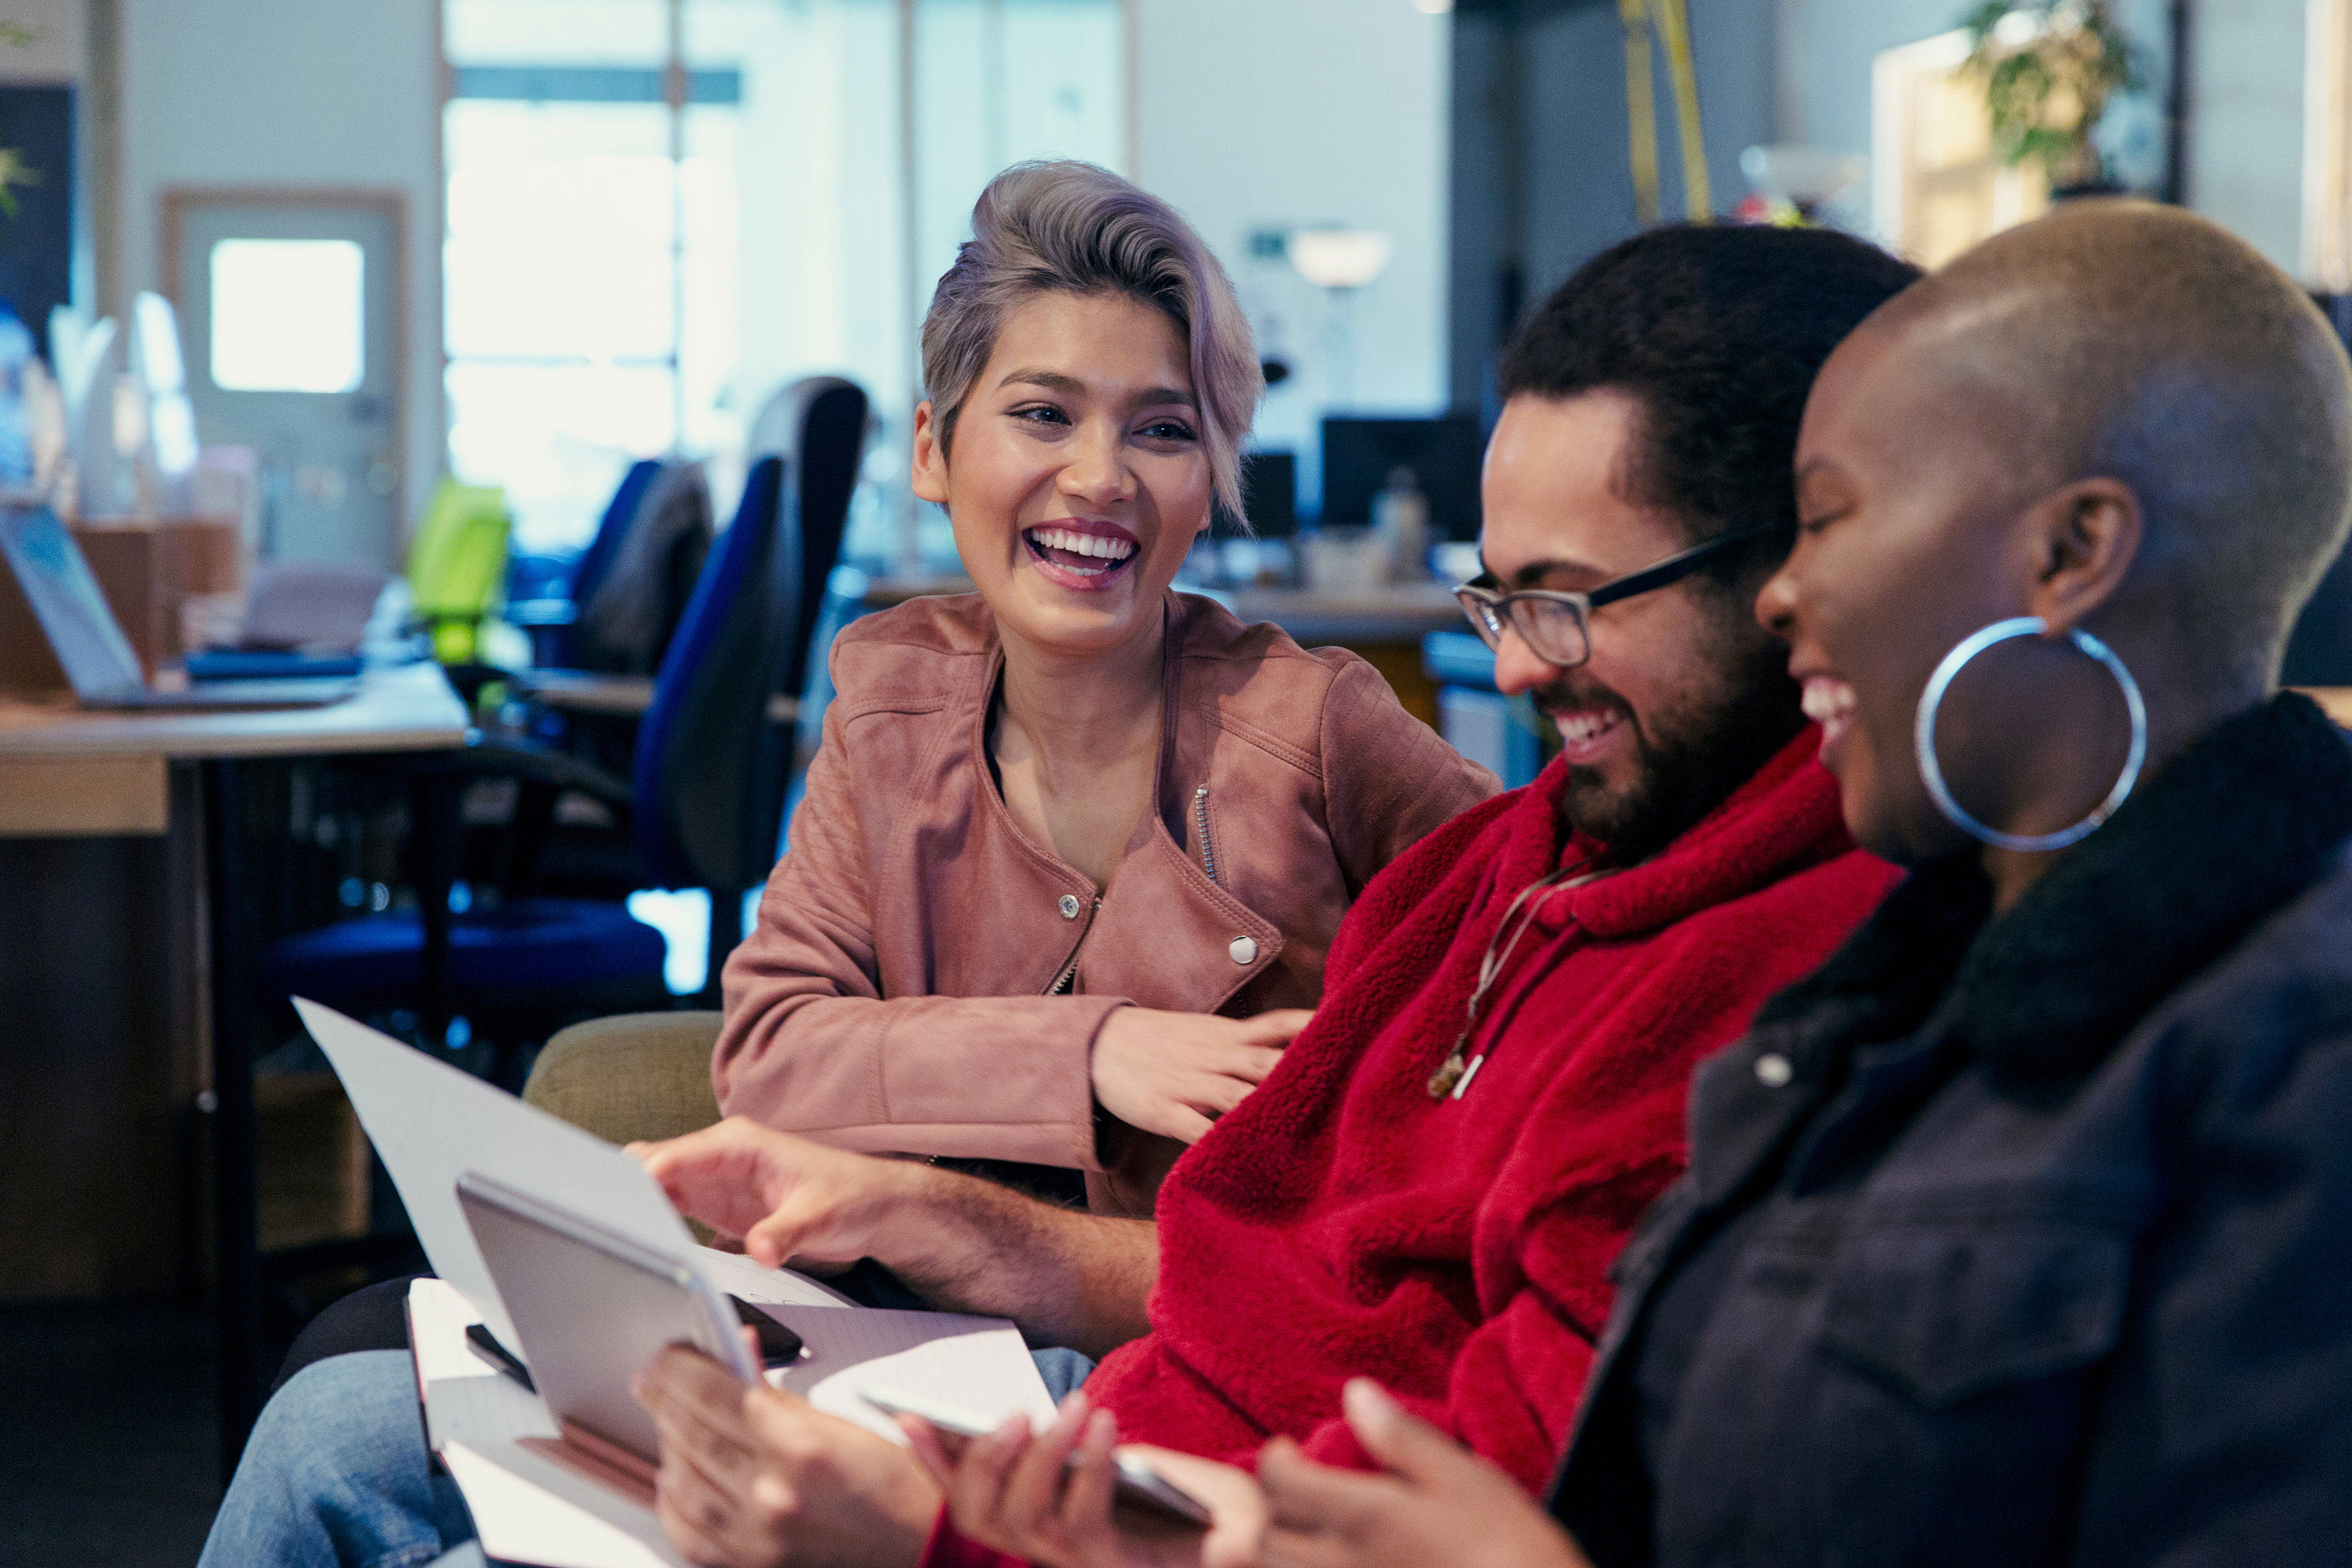 Three business people laughing in office